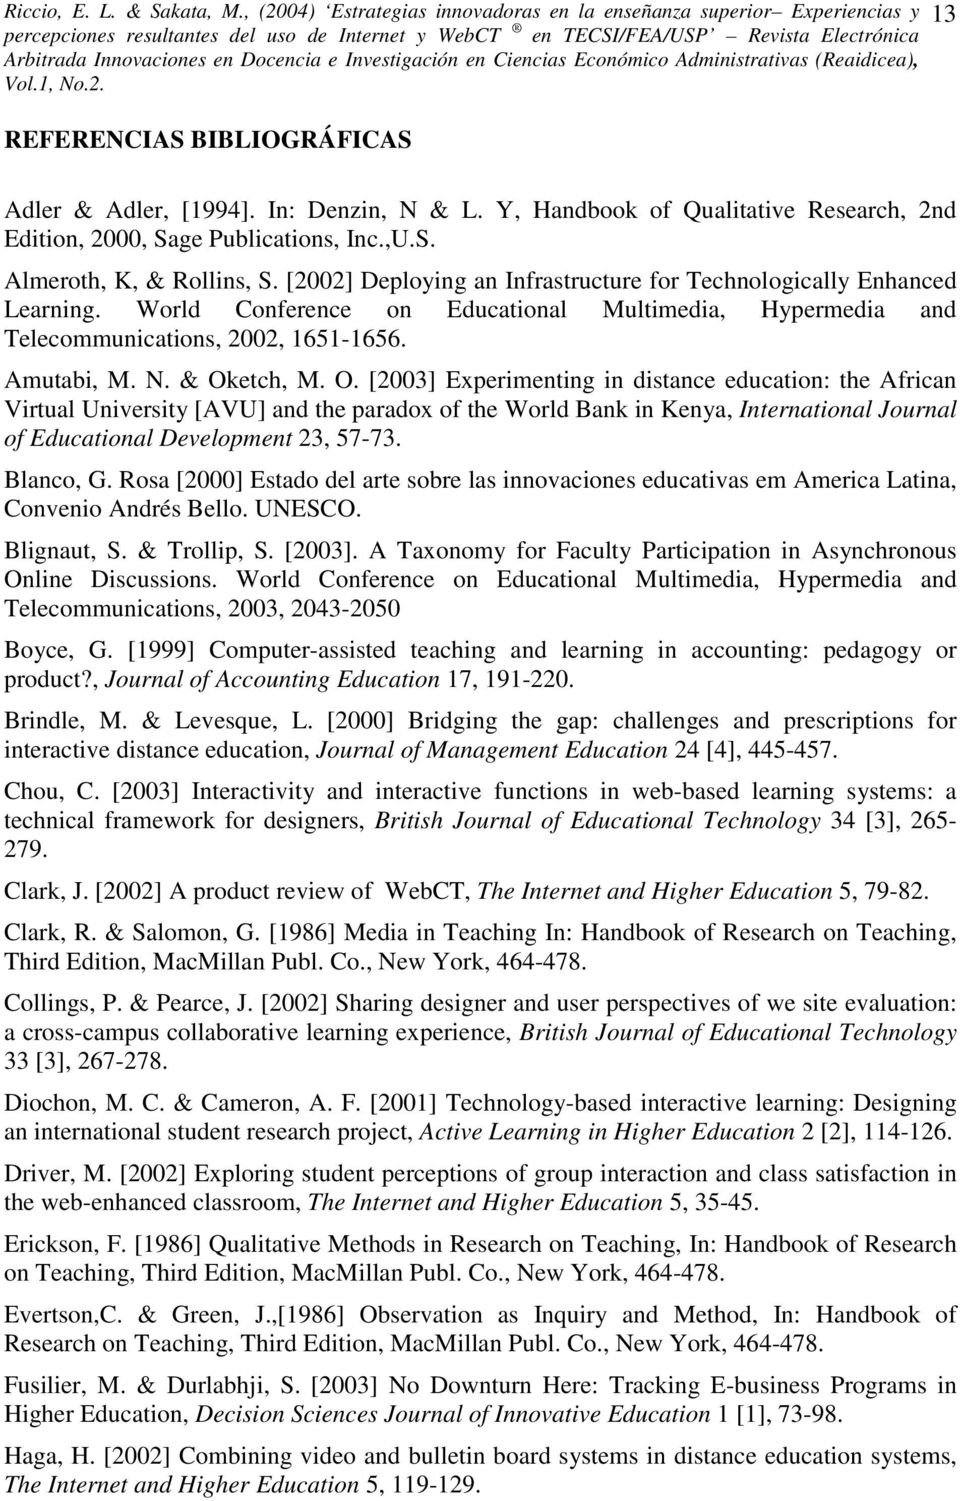 etch, M. O. [2003] Experimenting in distance education: the African Virtual University [AVU] and the paradox of the World Bank in Kenya, International Journal of Educational Development 23, 57-73.